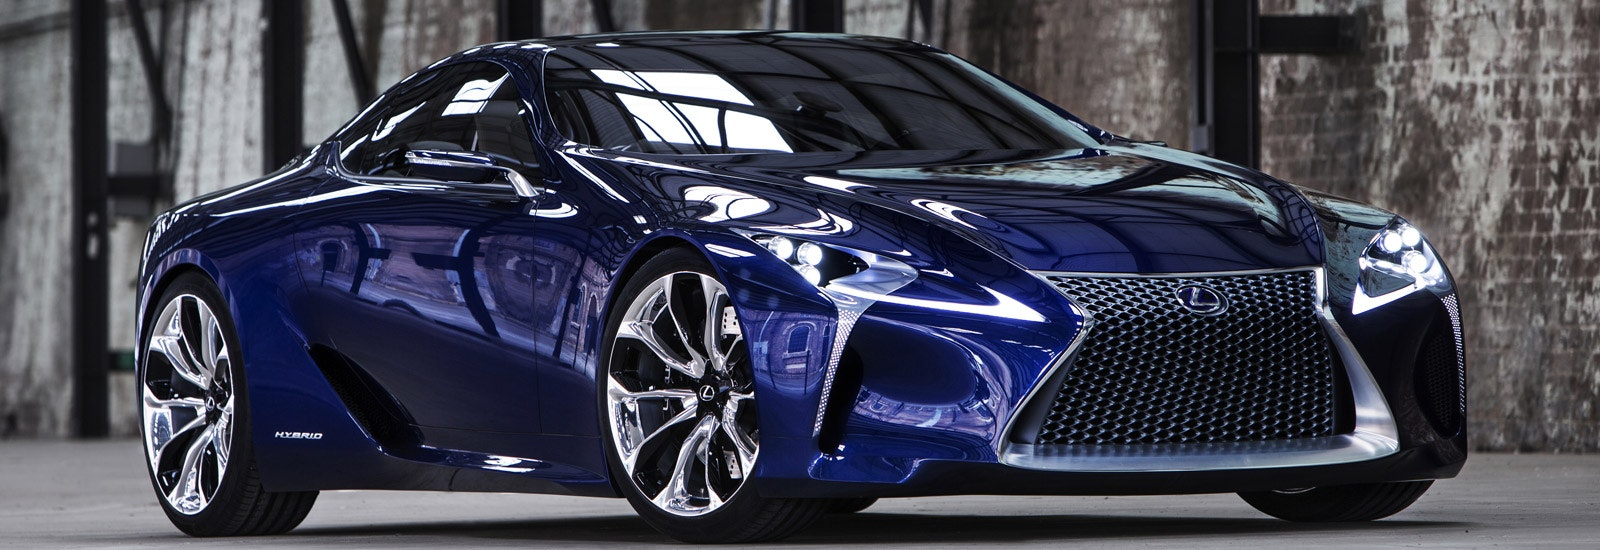 2018 Lexus Lc F Price Specs And Release Date Carwow